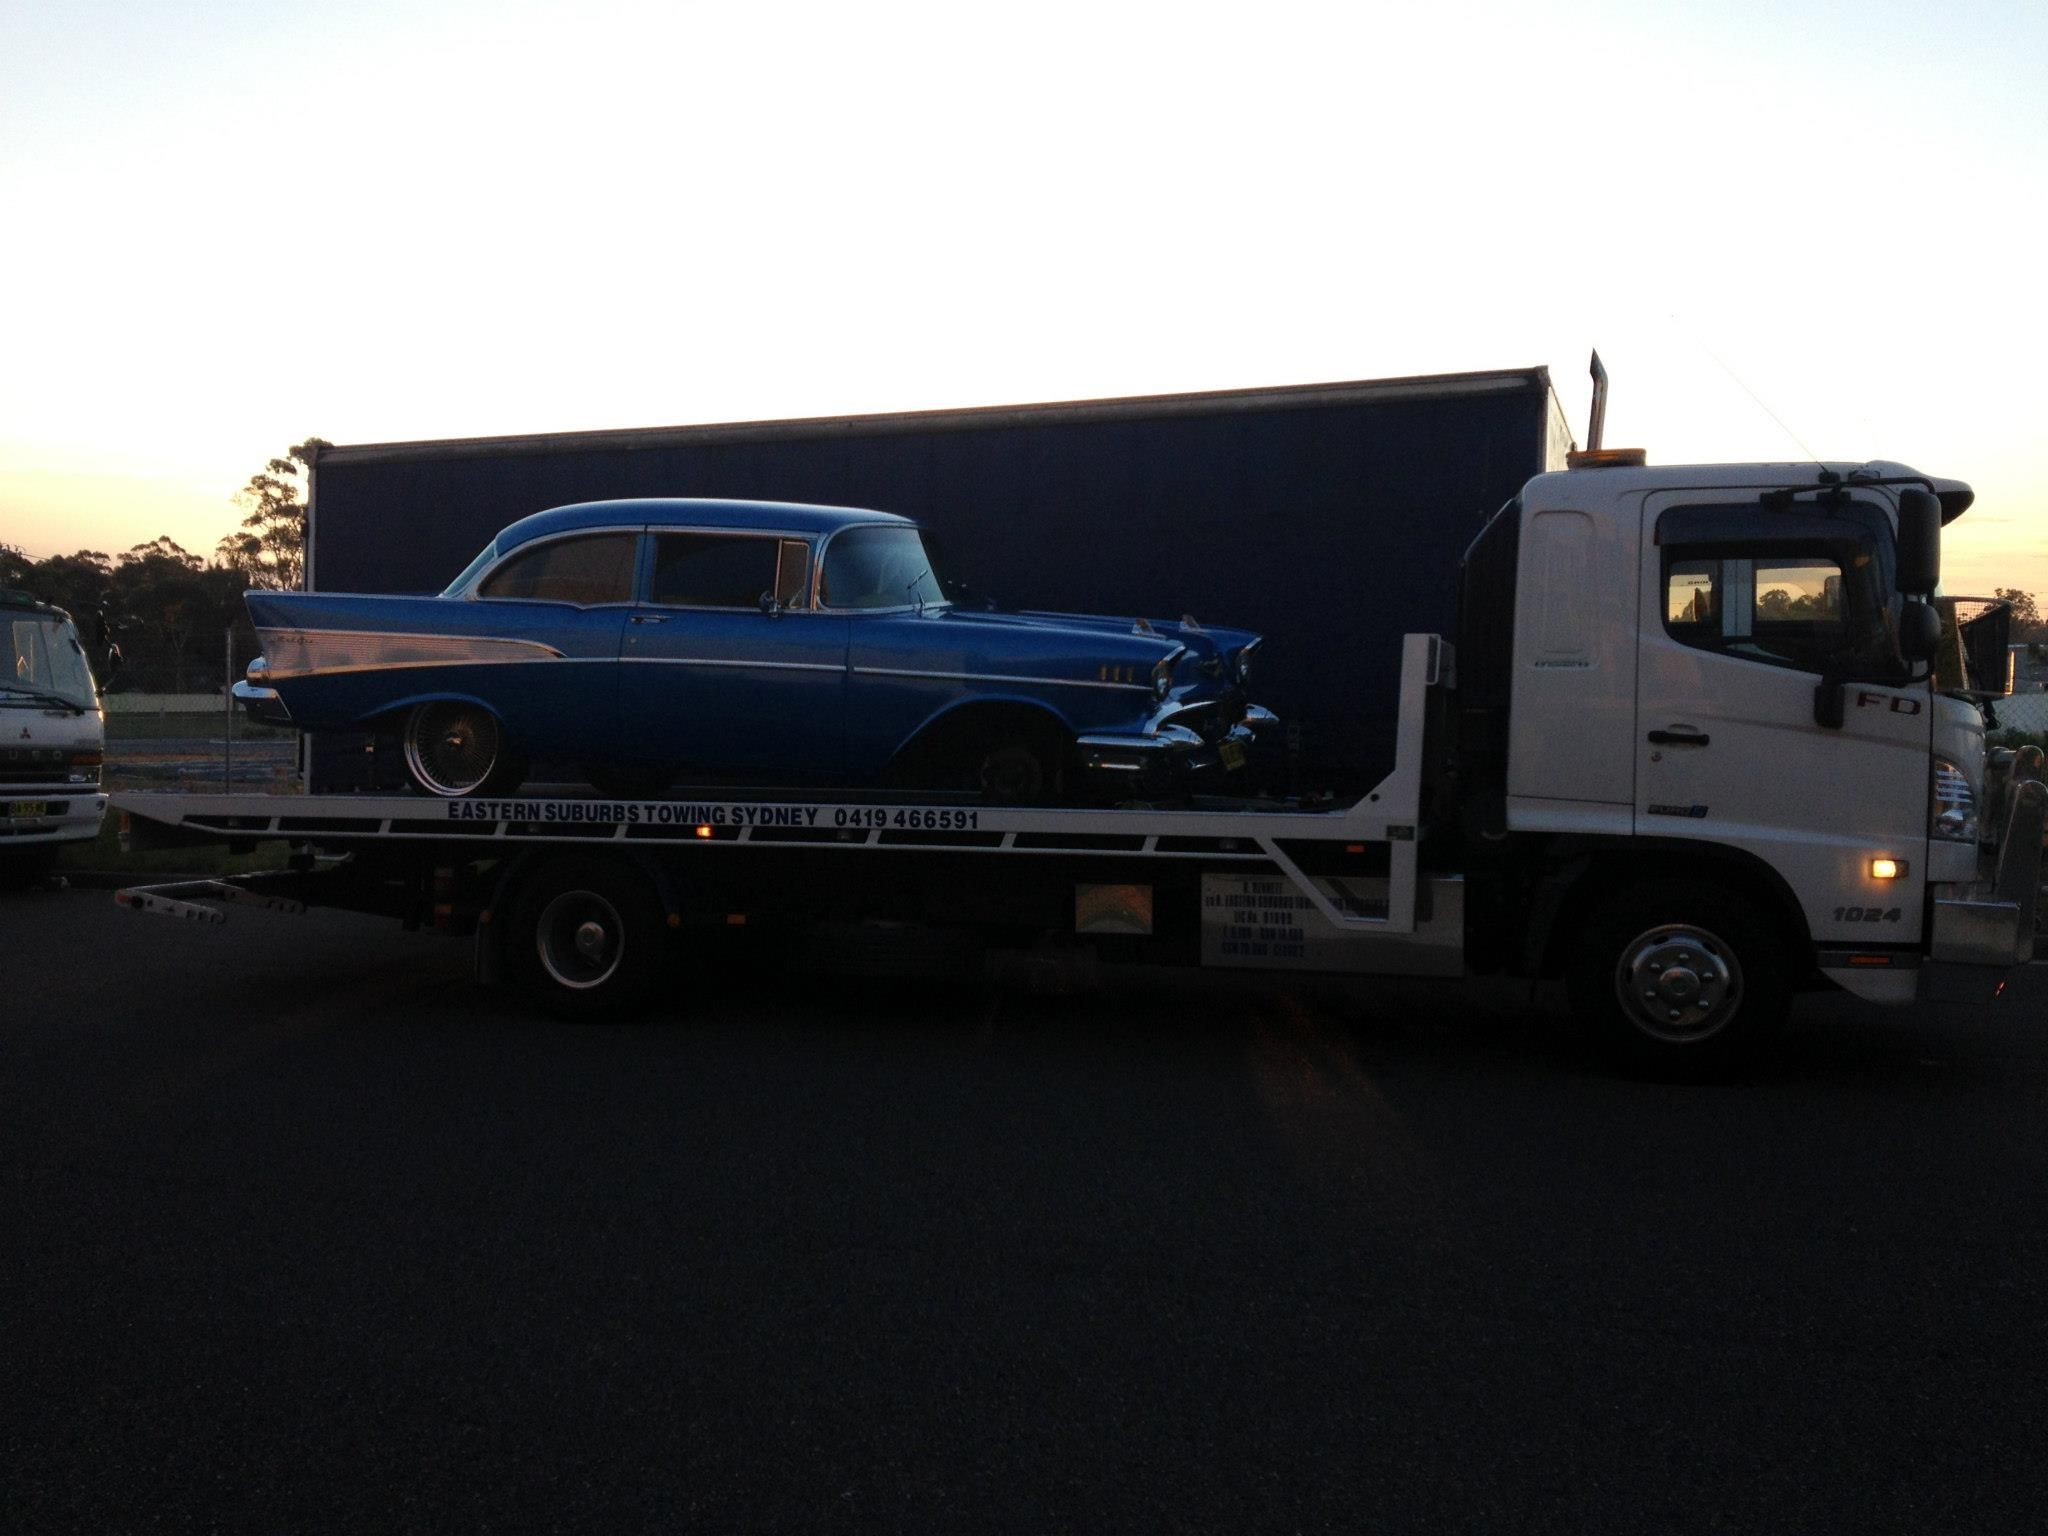 Towing Quote Classic Car Towing From Moorepark To Liverpoolcall For Free